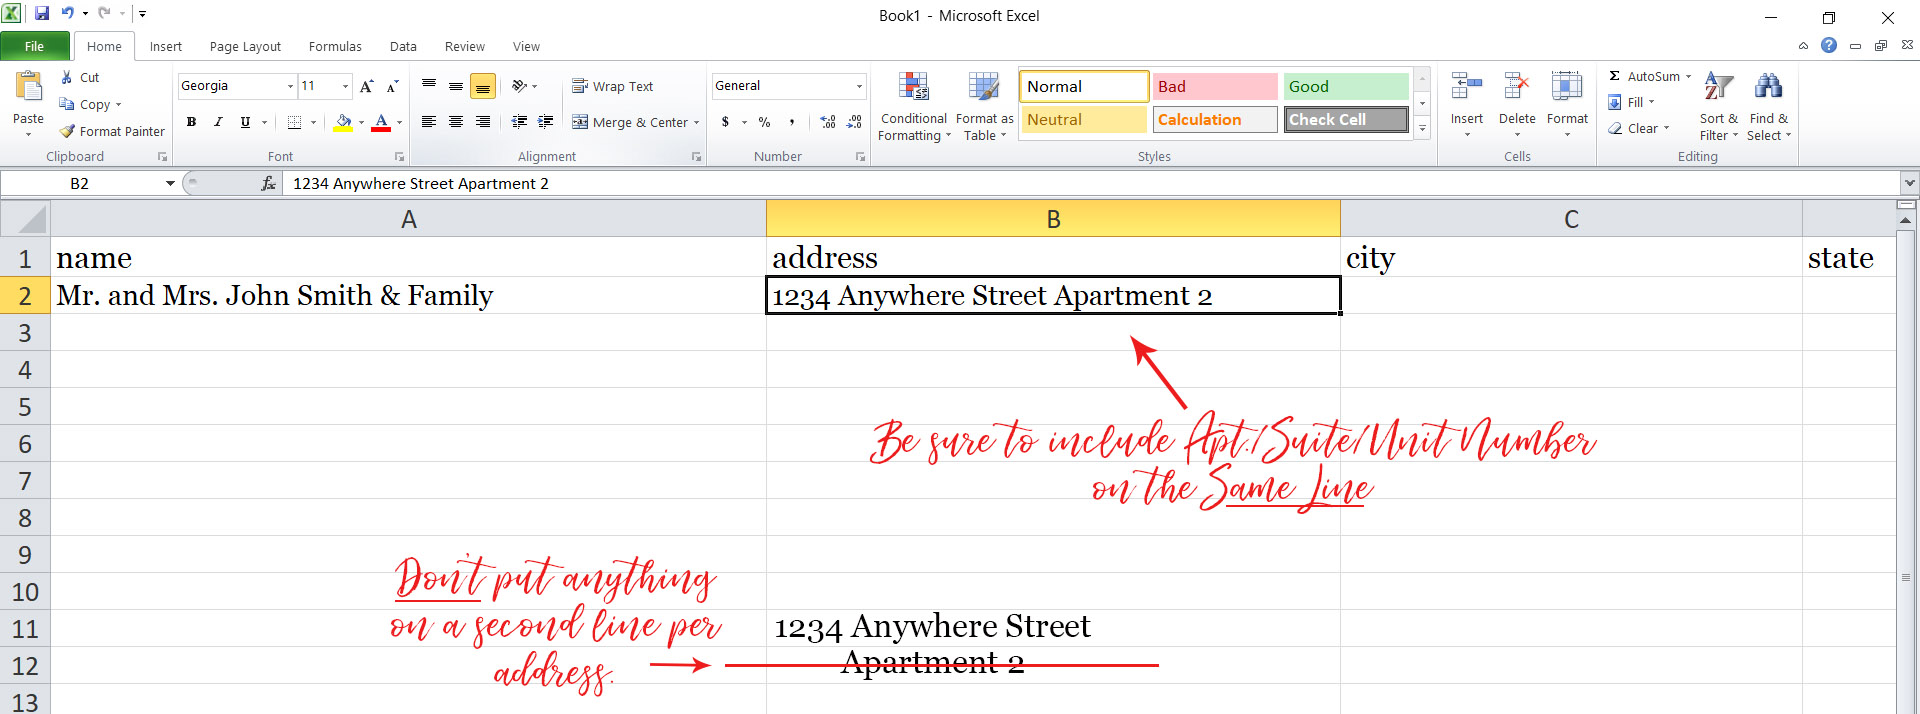 Cell B is where your full mailing address will go. Use only one line to complete this. Be sure to include any apartment, suite, unit number on the same line. DO NOT add the city, state or zipcode to this line.